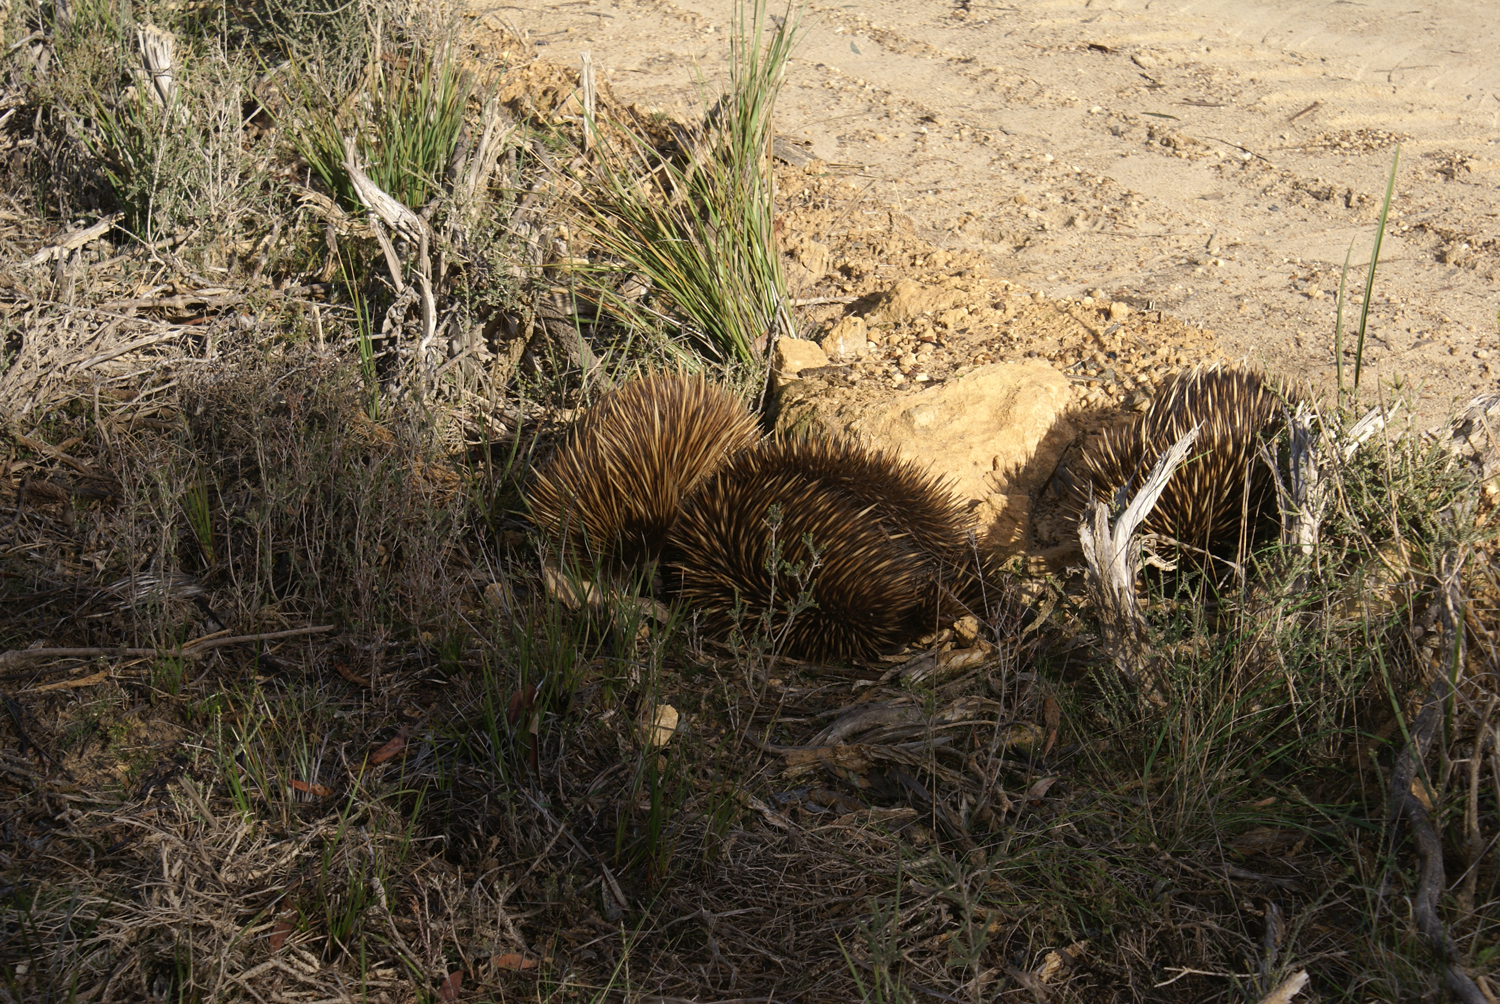 A rare sight: echidnas in the wild!